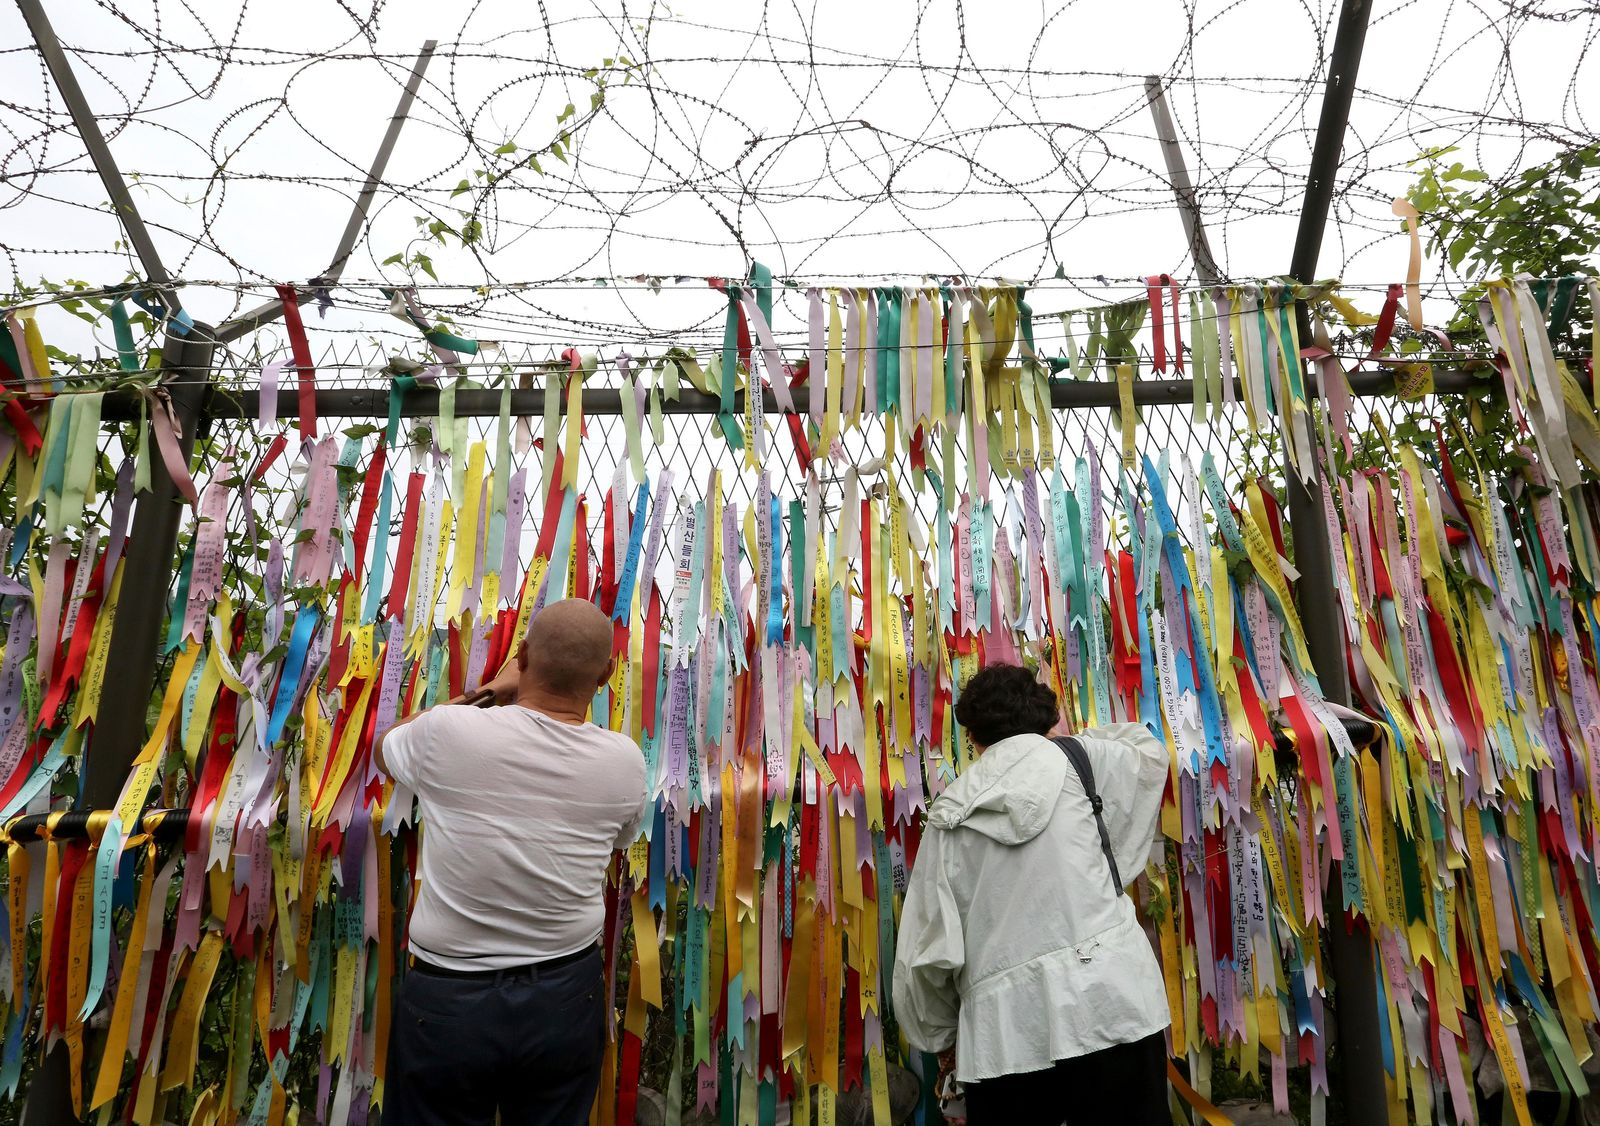 Visitors look through a wire fence decorated with ribbons written with messages wishing for the reunification of the two Koreas at the Imjingak Pavilion, near the demilitarized zone of Panmunjom, in Paju, South Korea, Thursday, June 20, 2019. (AP Photo/Ahn Young-joon)